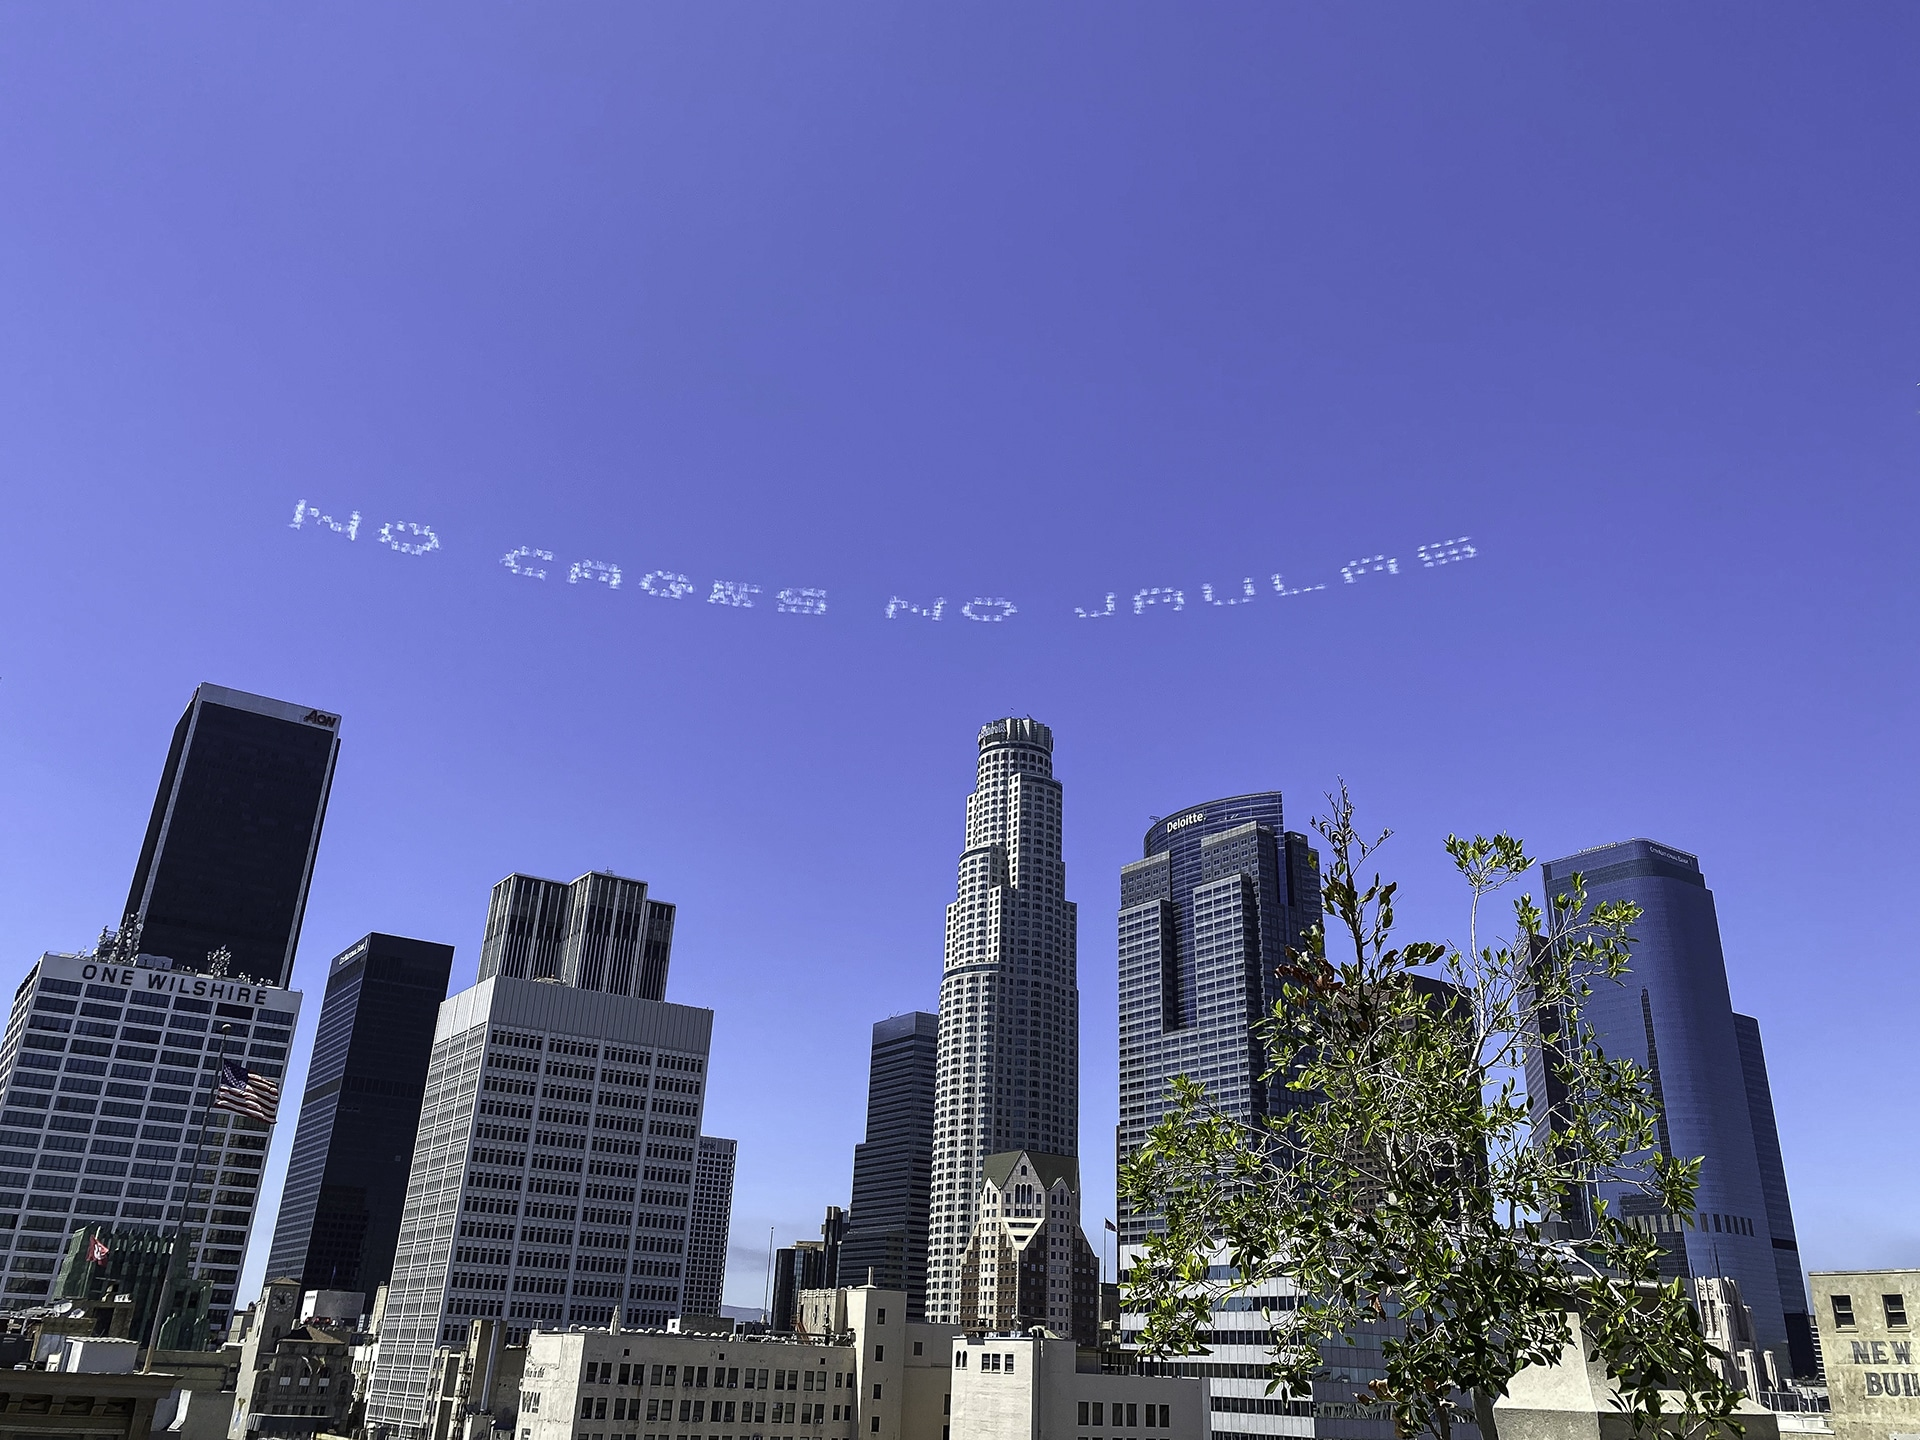 NO CAGES NO JAULAS is skytyped of downtown L.A.